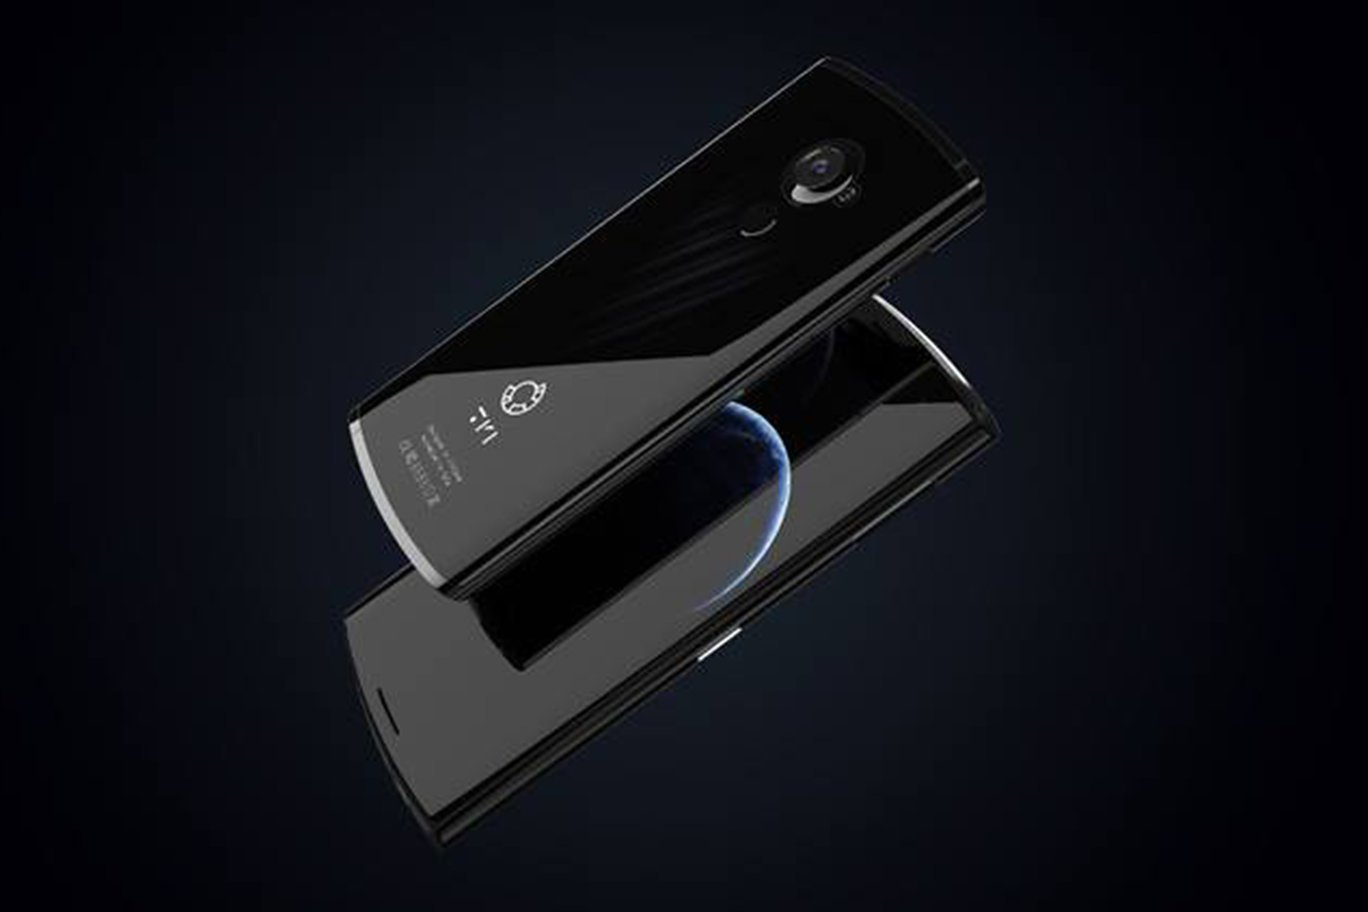 4. Turing Phone Render Fake